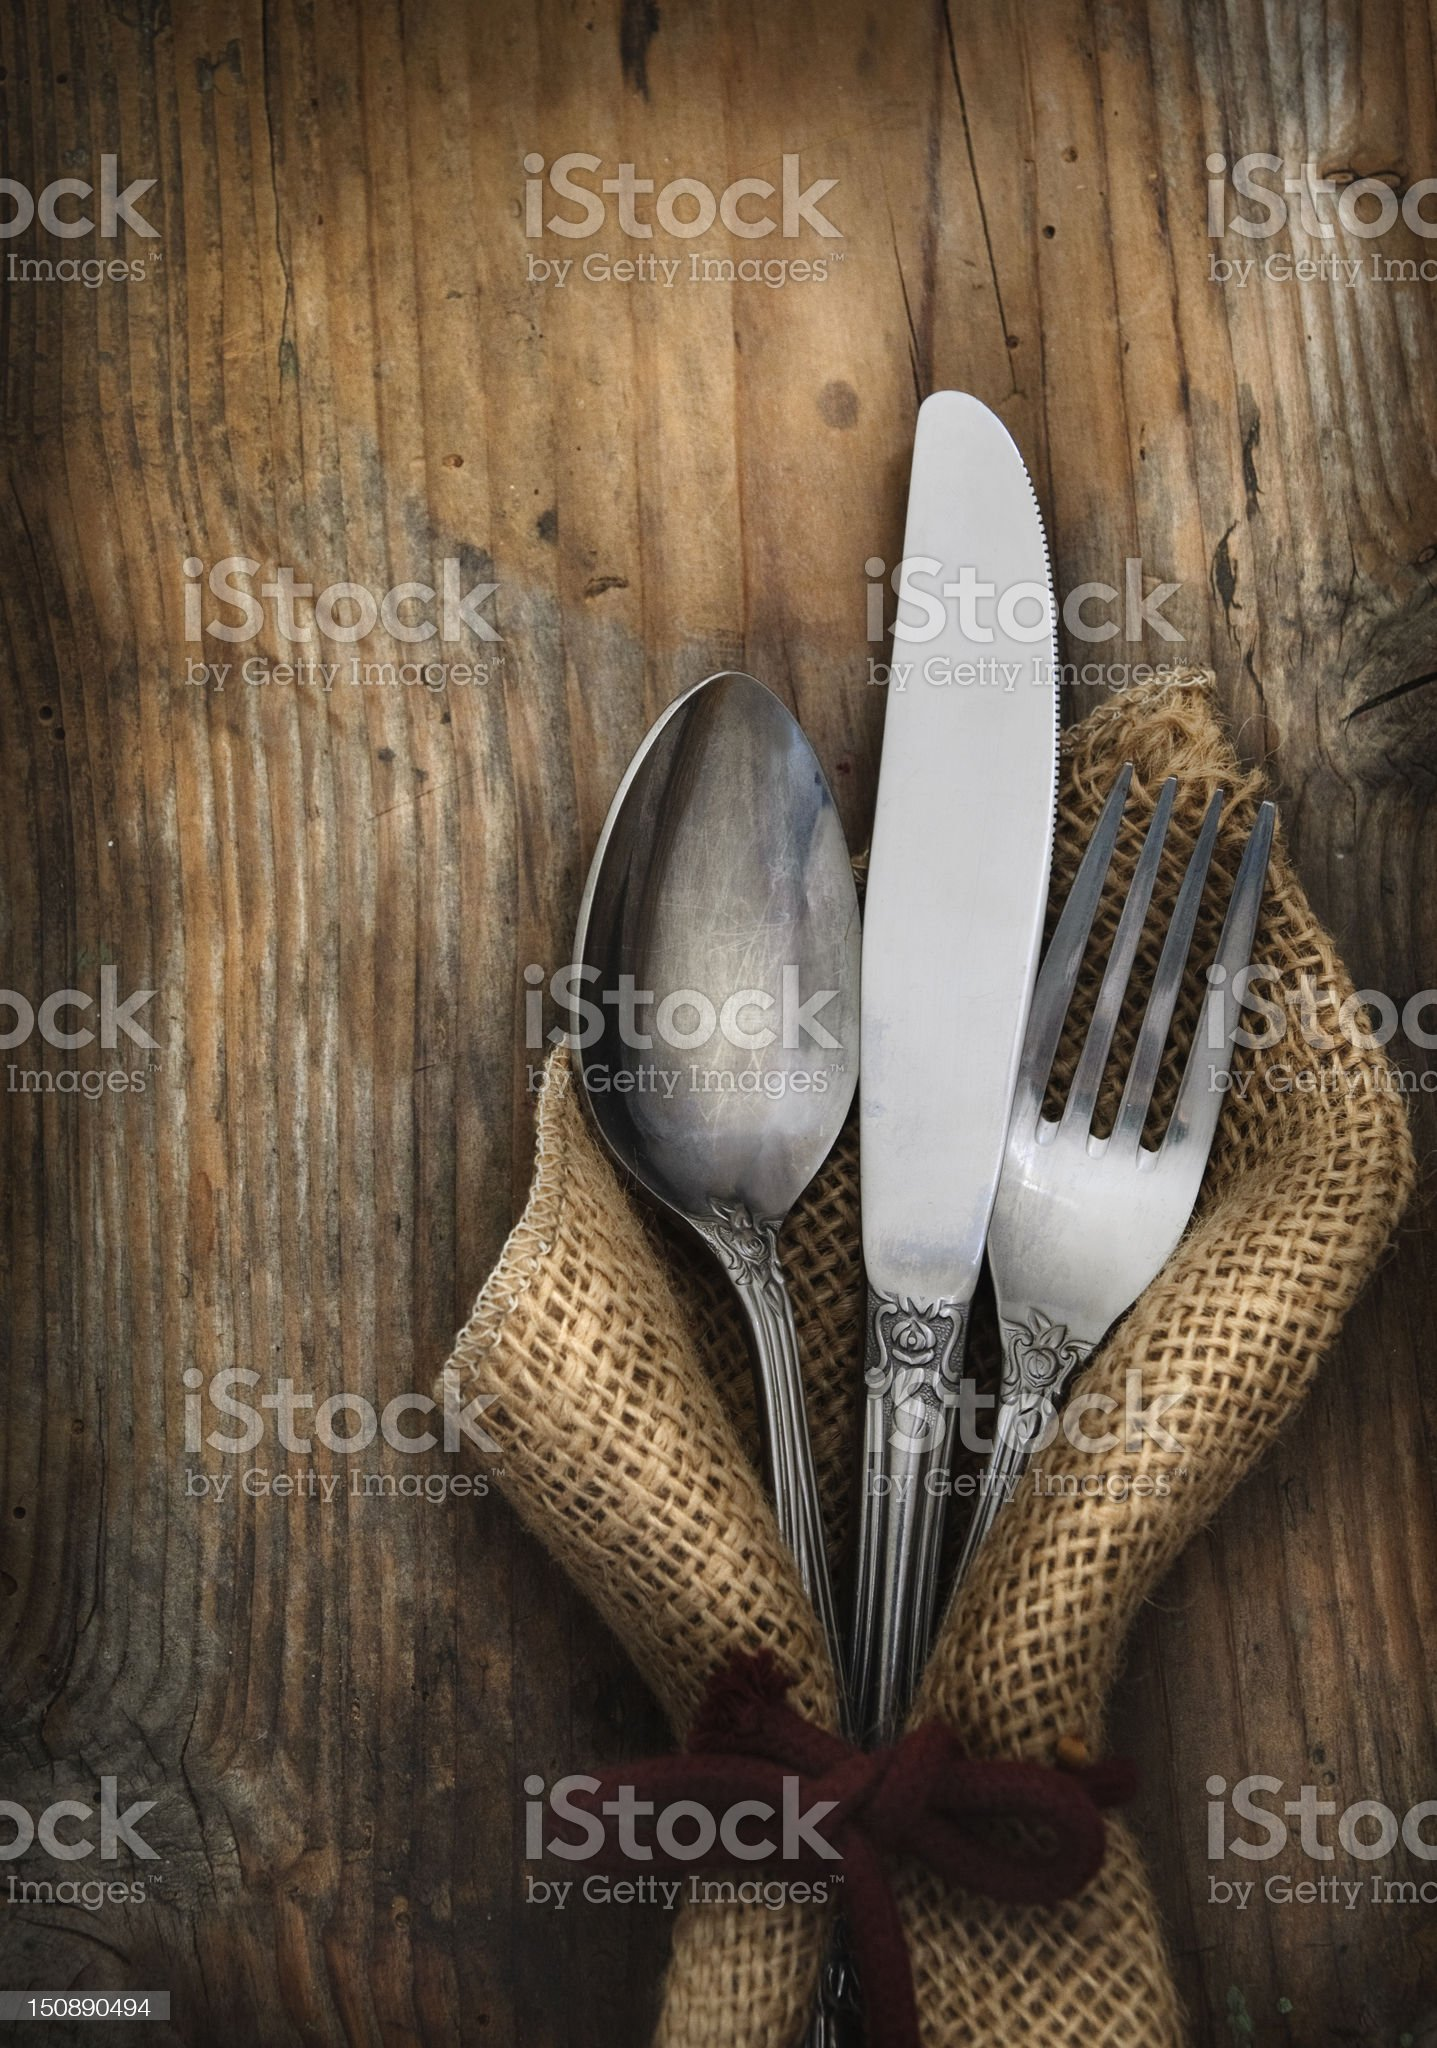 Vintage silverware royalty-free stock photo